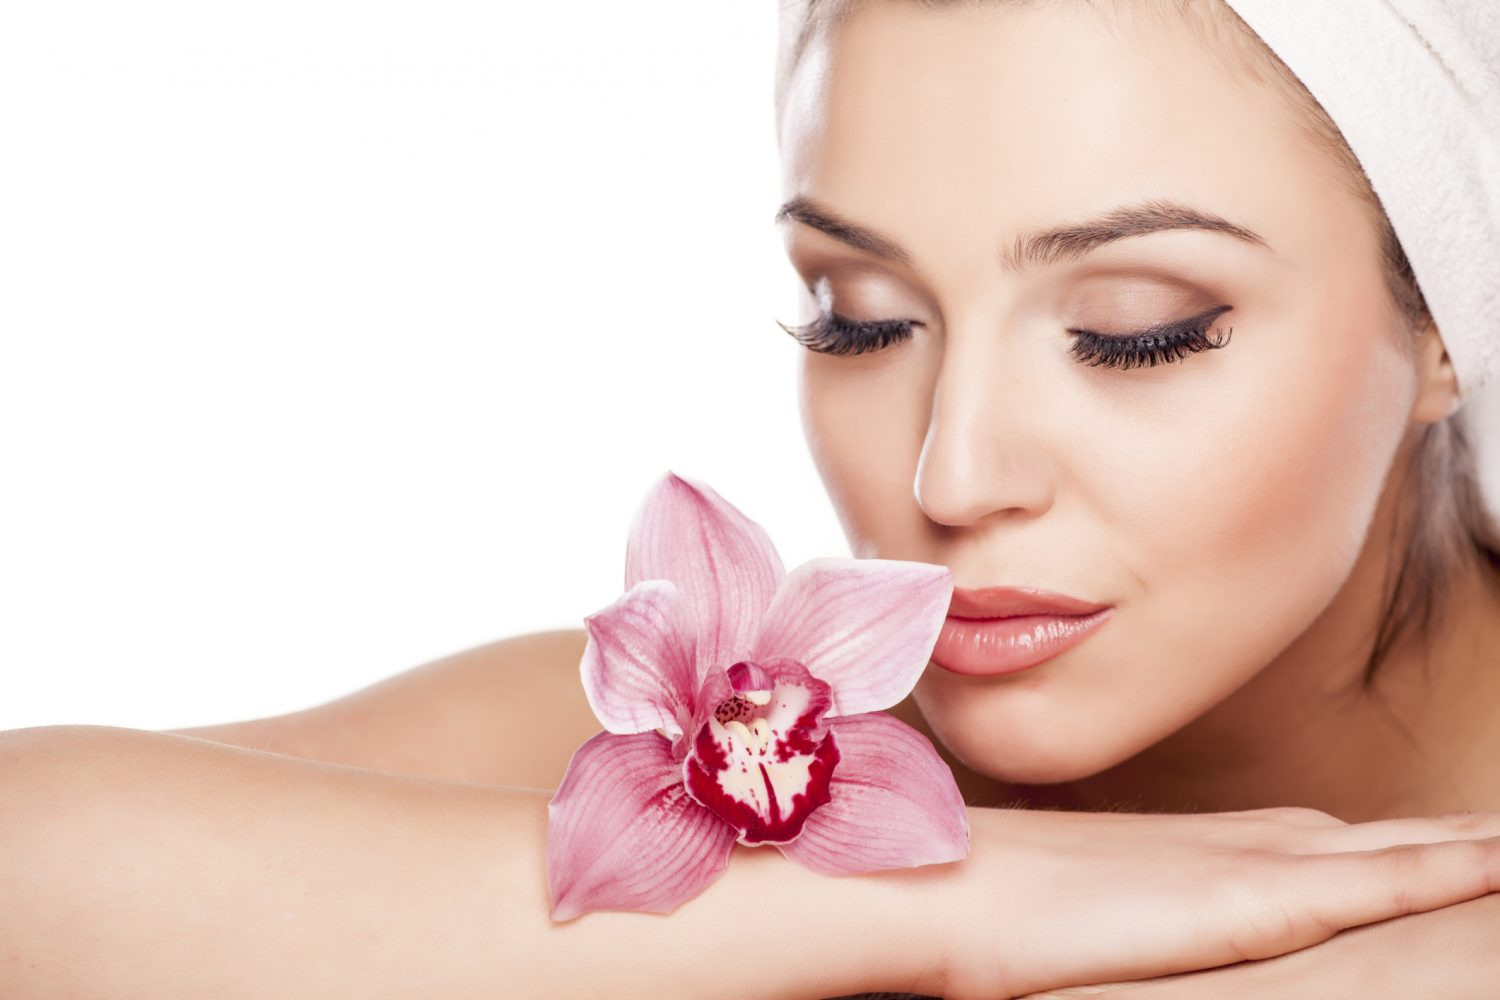 Fashion Valley Beauty Salon: Pamper Yourself With An Exclusive Holiday Spa Day At Joya Spa